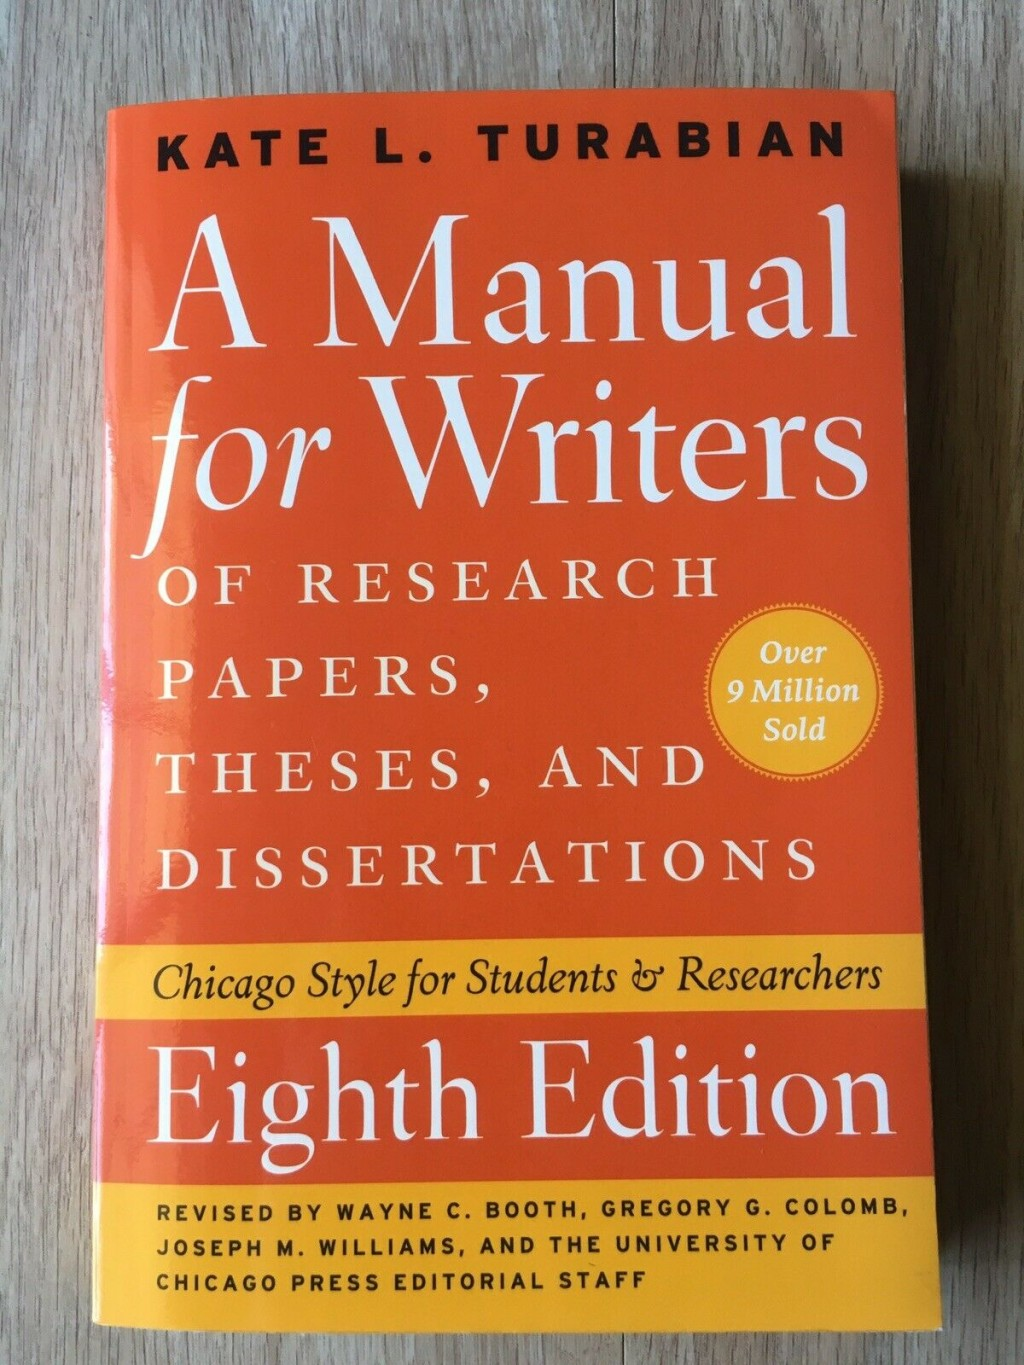 009 Research Paper Manual For Writers Of Papers Theses And Dissertations S Fearsome A Ed 8 Large